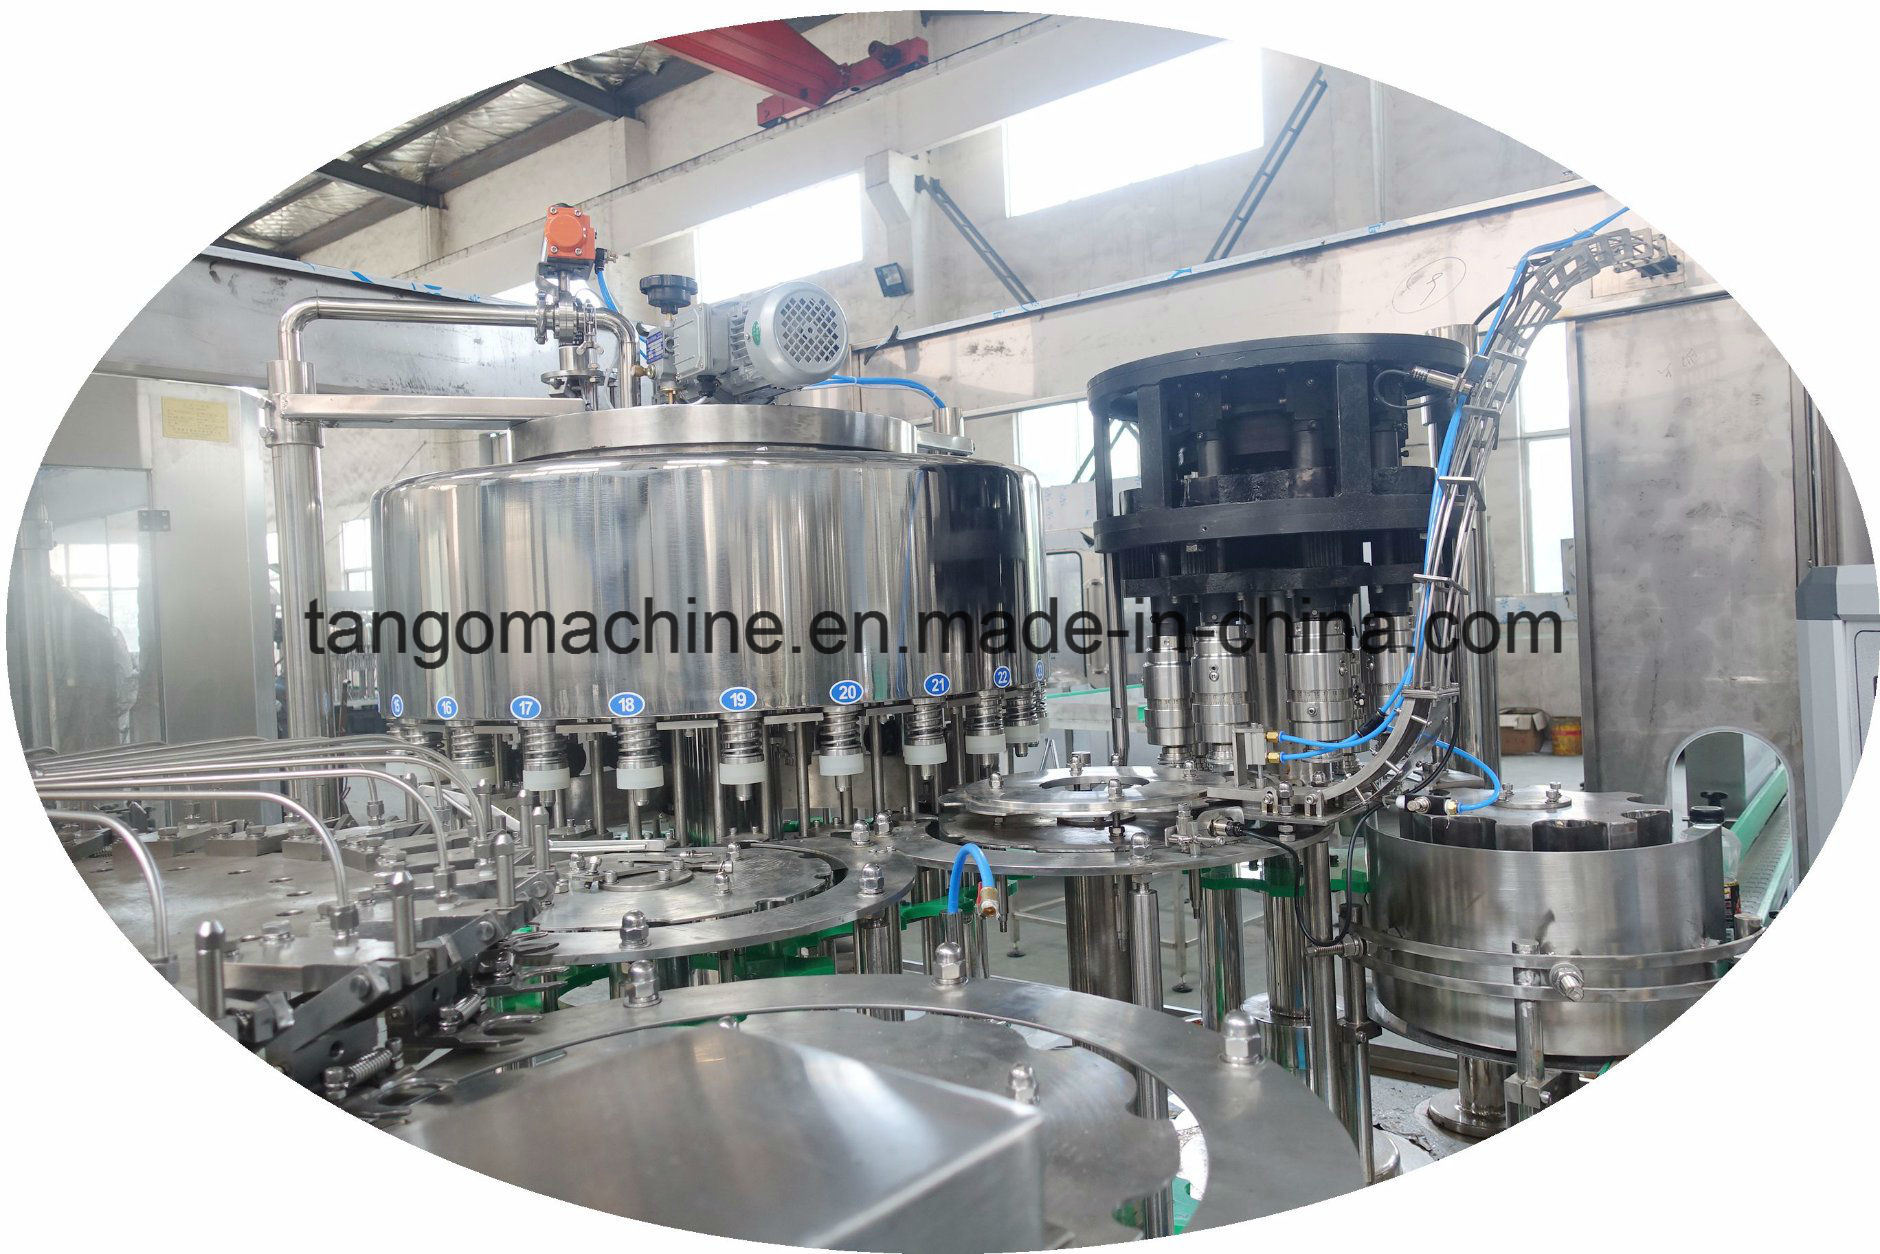 2017 New Technology Automatic Pet Bottle Juice Washing Filling Capping 3-in-1 Unit Machine pictures & photos